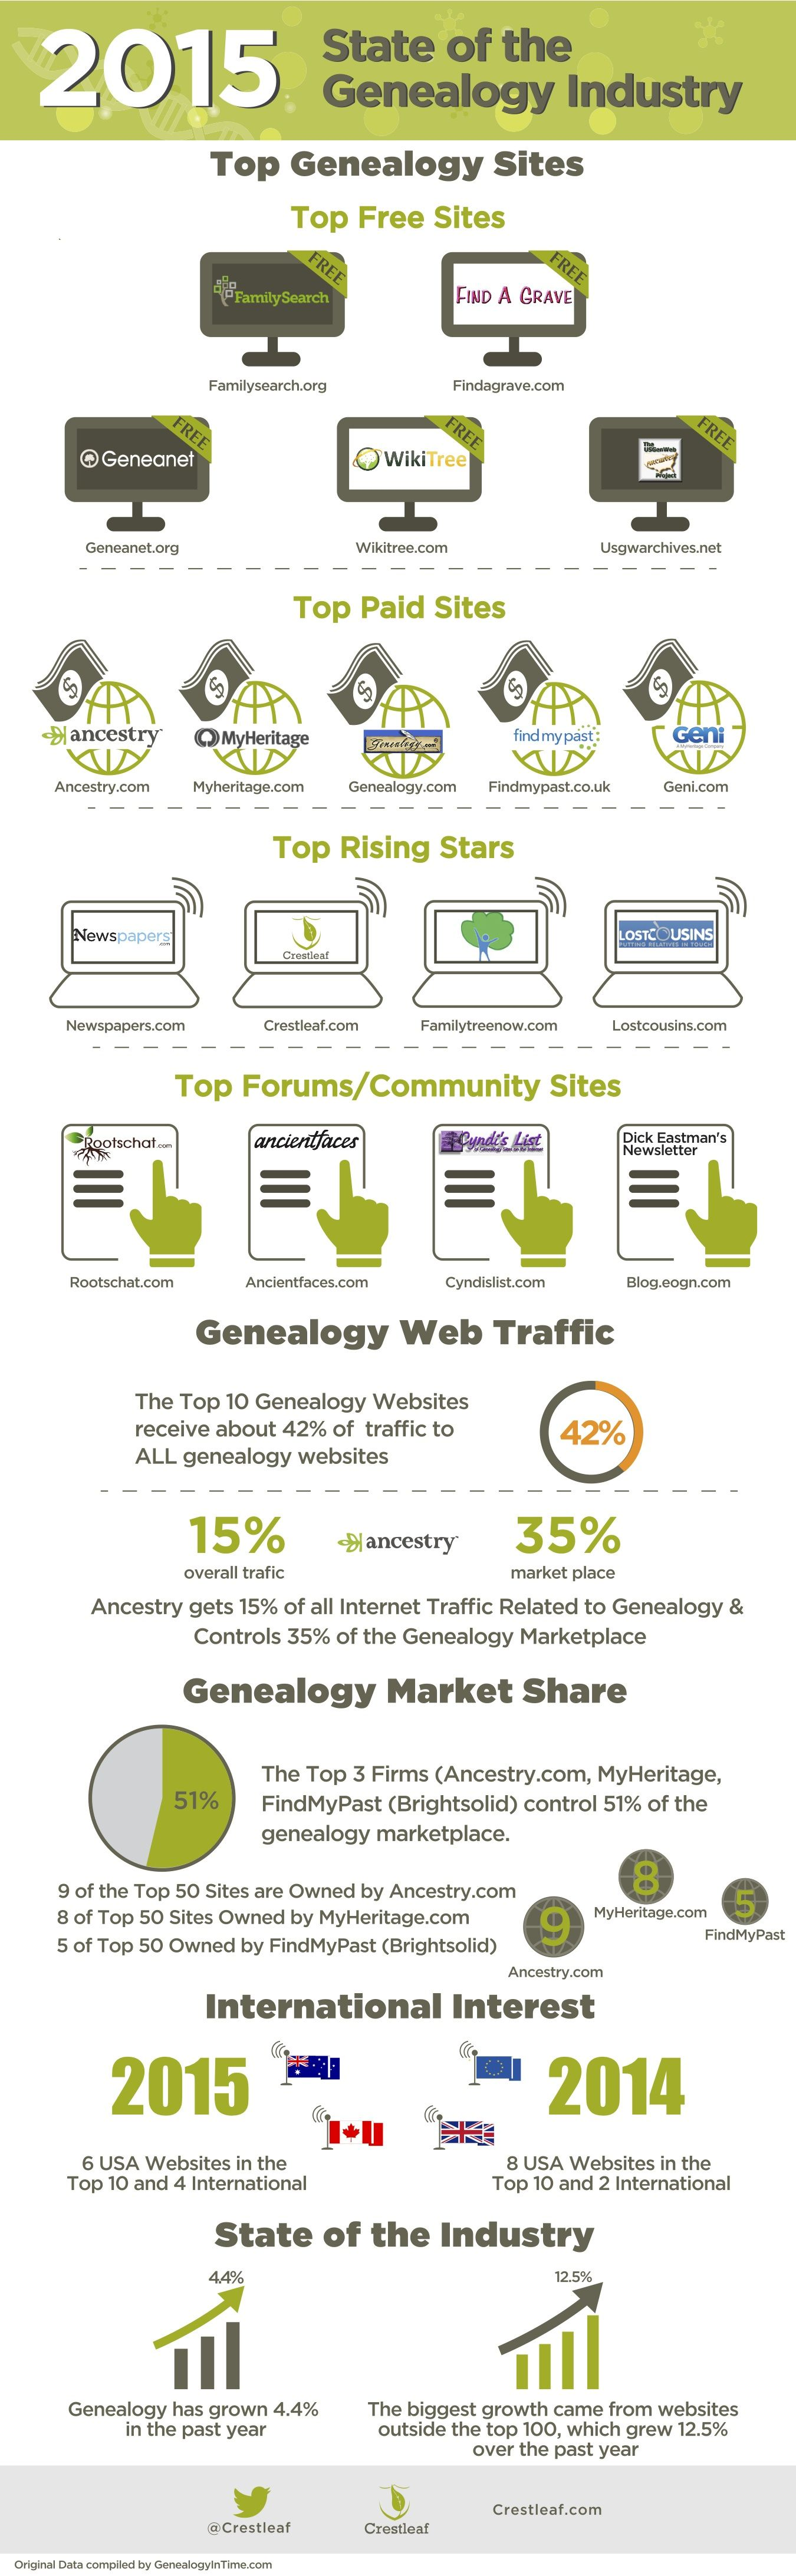 Recently, GenealogyInTime put together their annual state of the genealogy industry stats, with the Top 100 Genealogy Websites. I have to admit that, while I tend to be a numbers geek, it can b... #genealogy